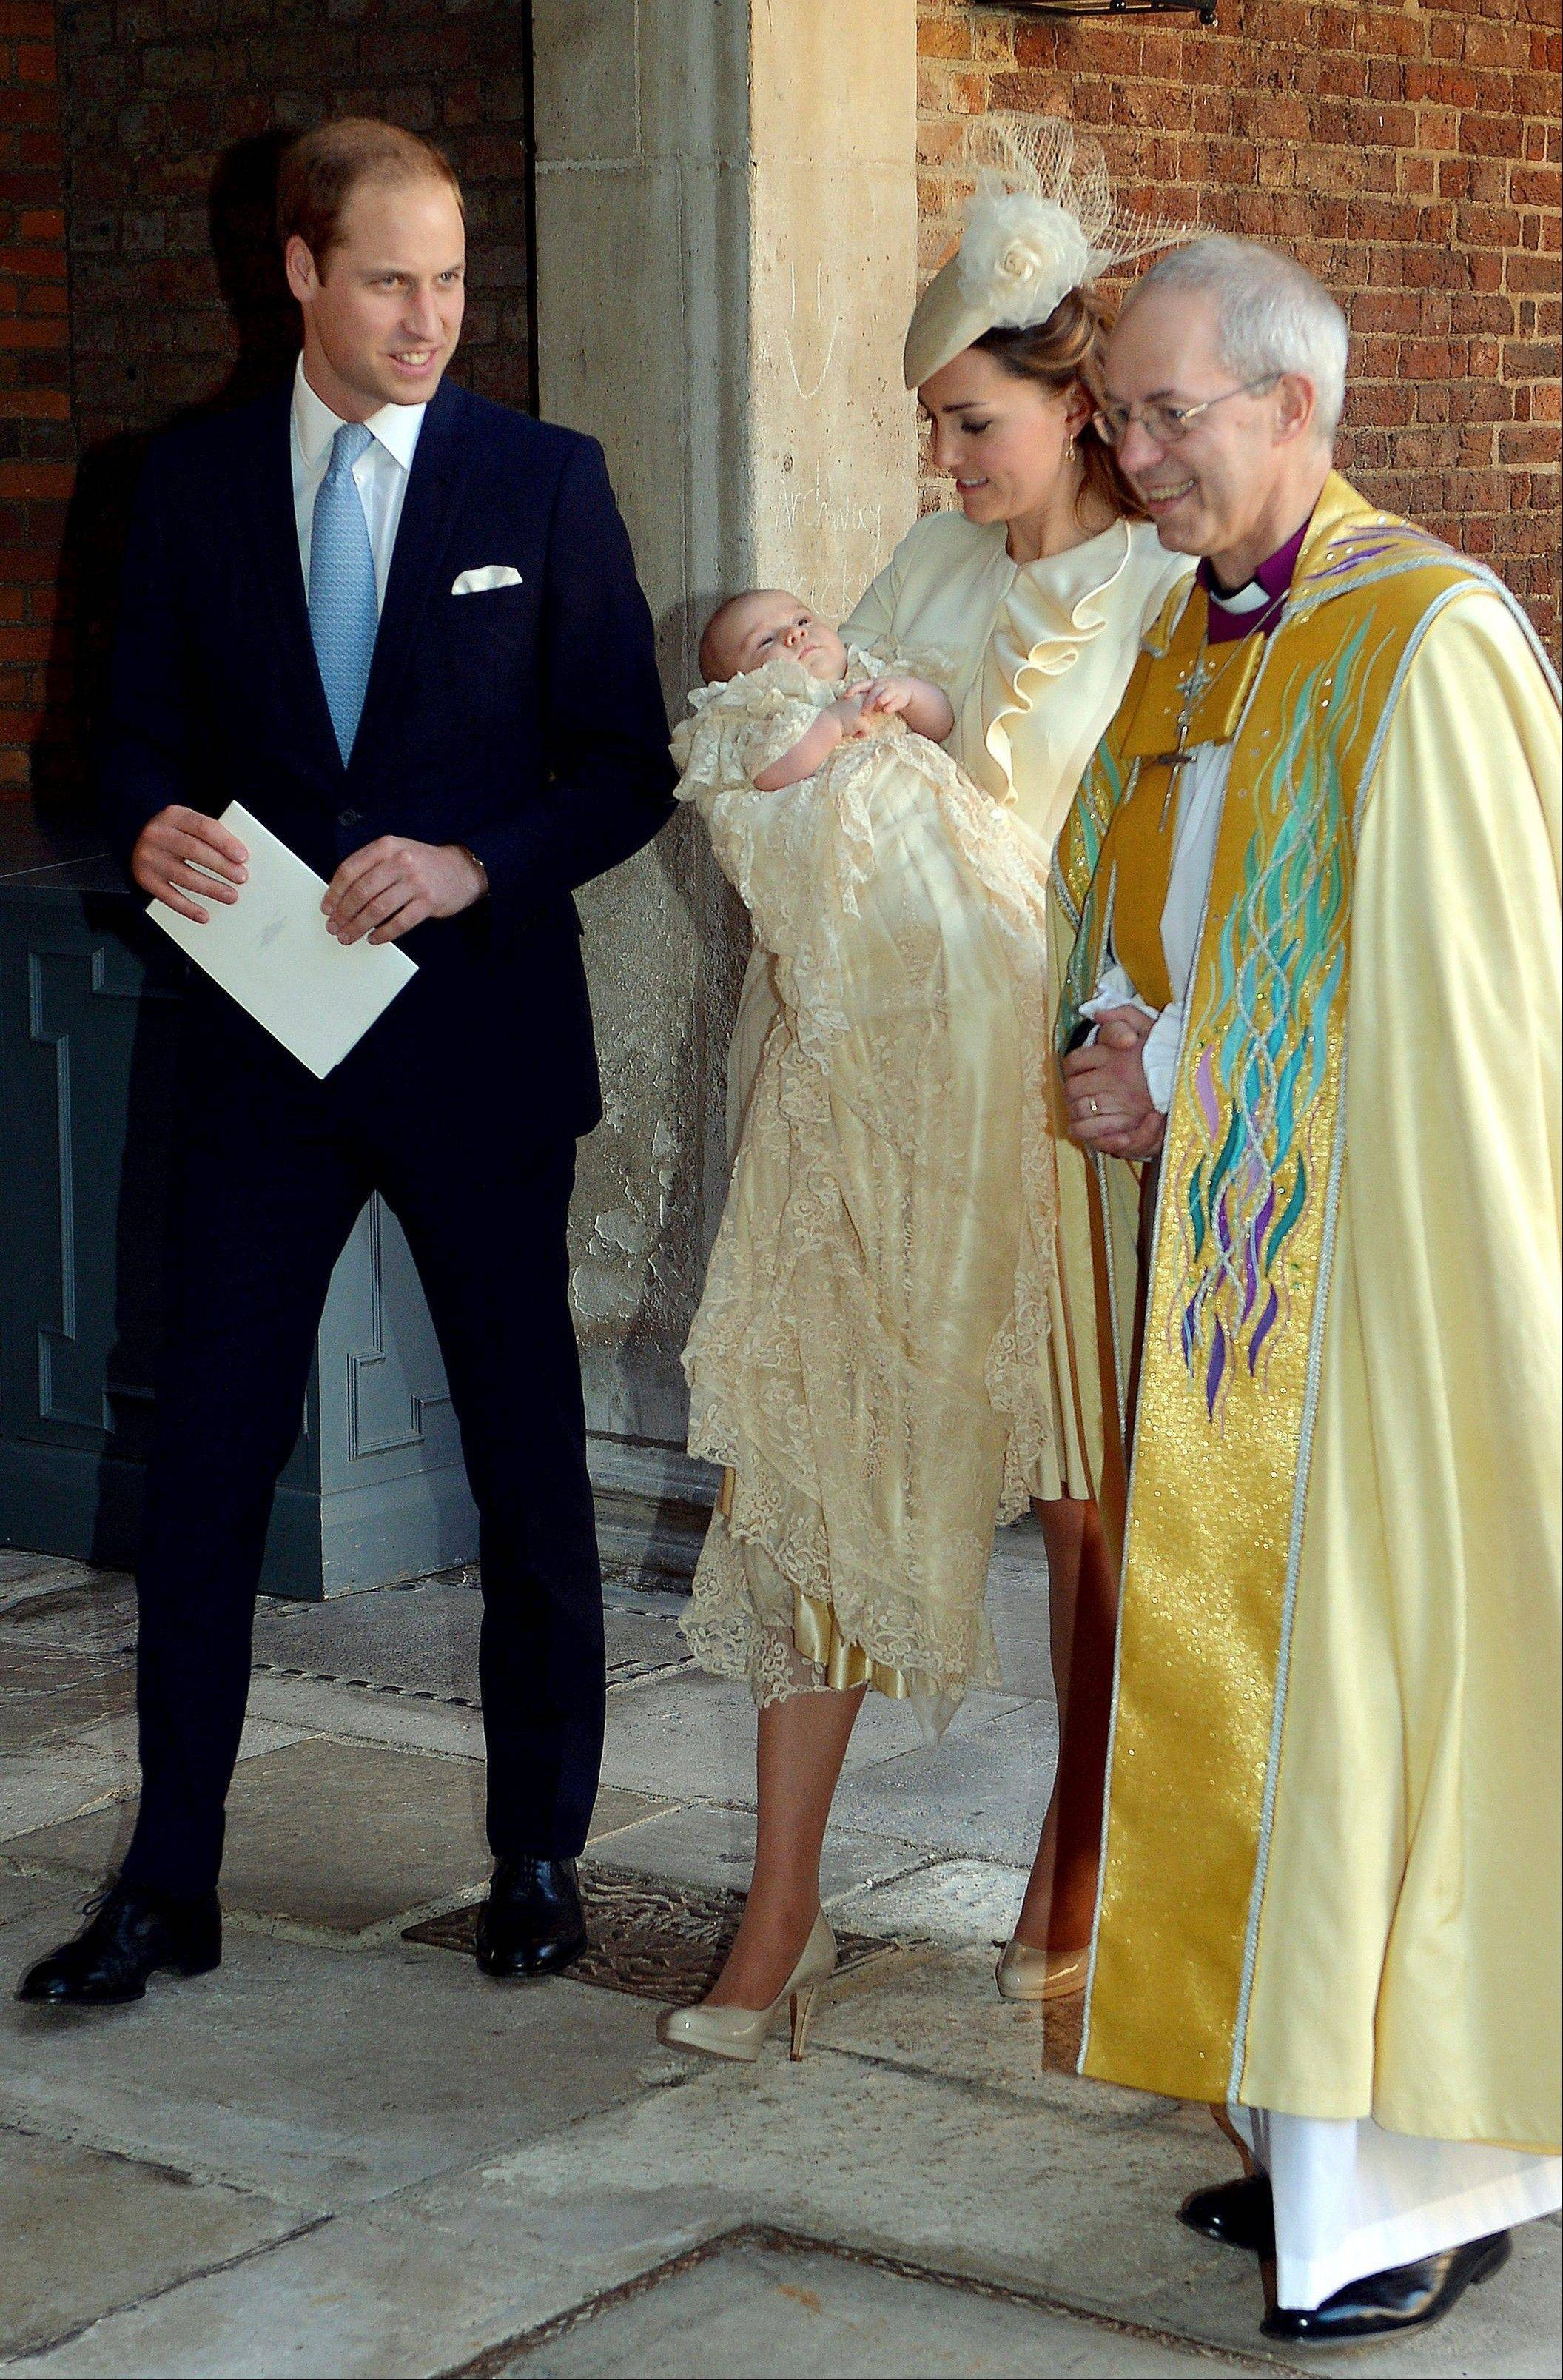 Britain's Prince William, right, Kate Duchess of Cambridge with their son, Prince George, leave the Chapel Royal in St James' Palace in London, with the Archbishop of Canterbury Justin Welby after the christening of the 3-month-old Prince George.